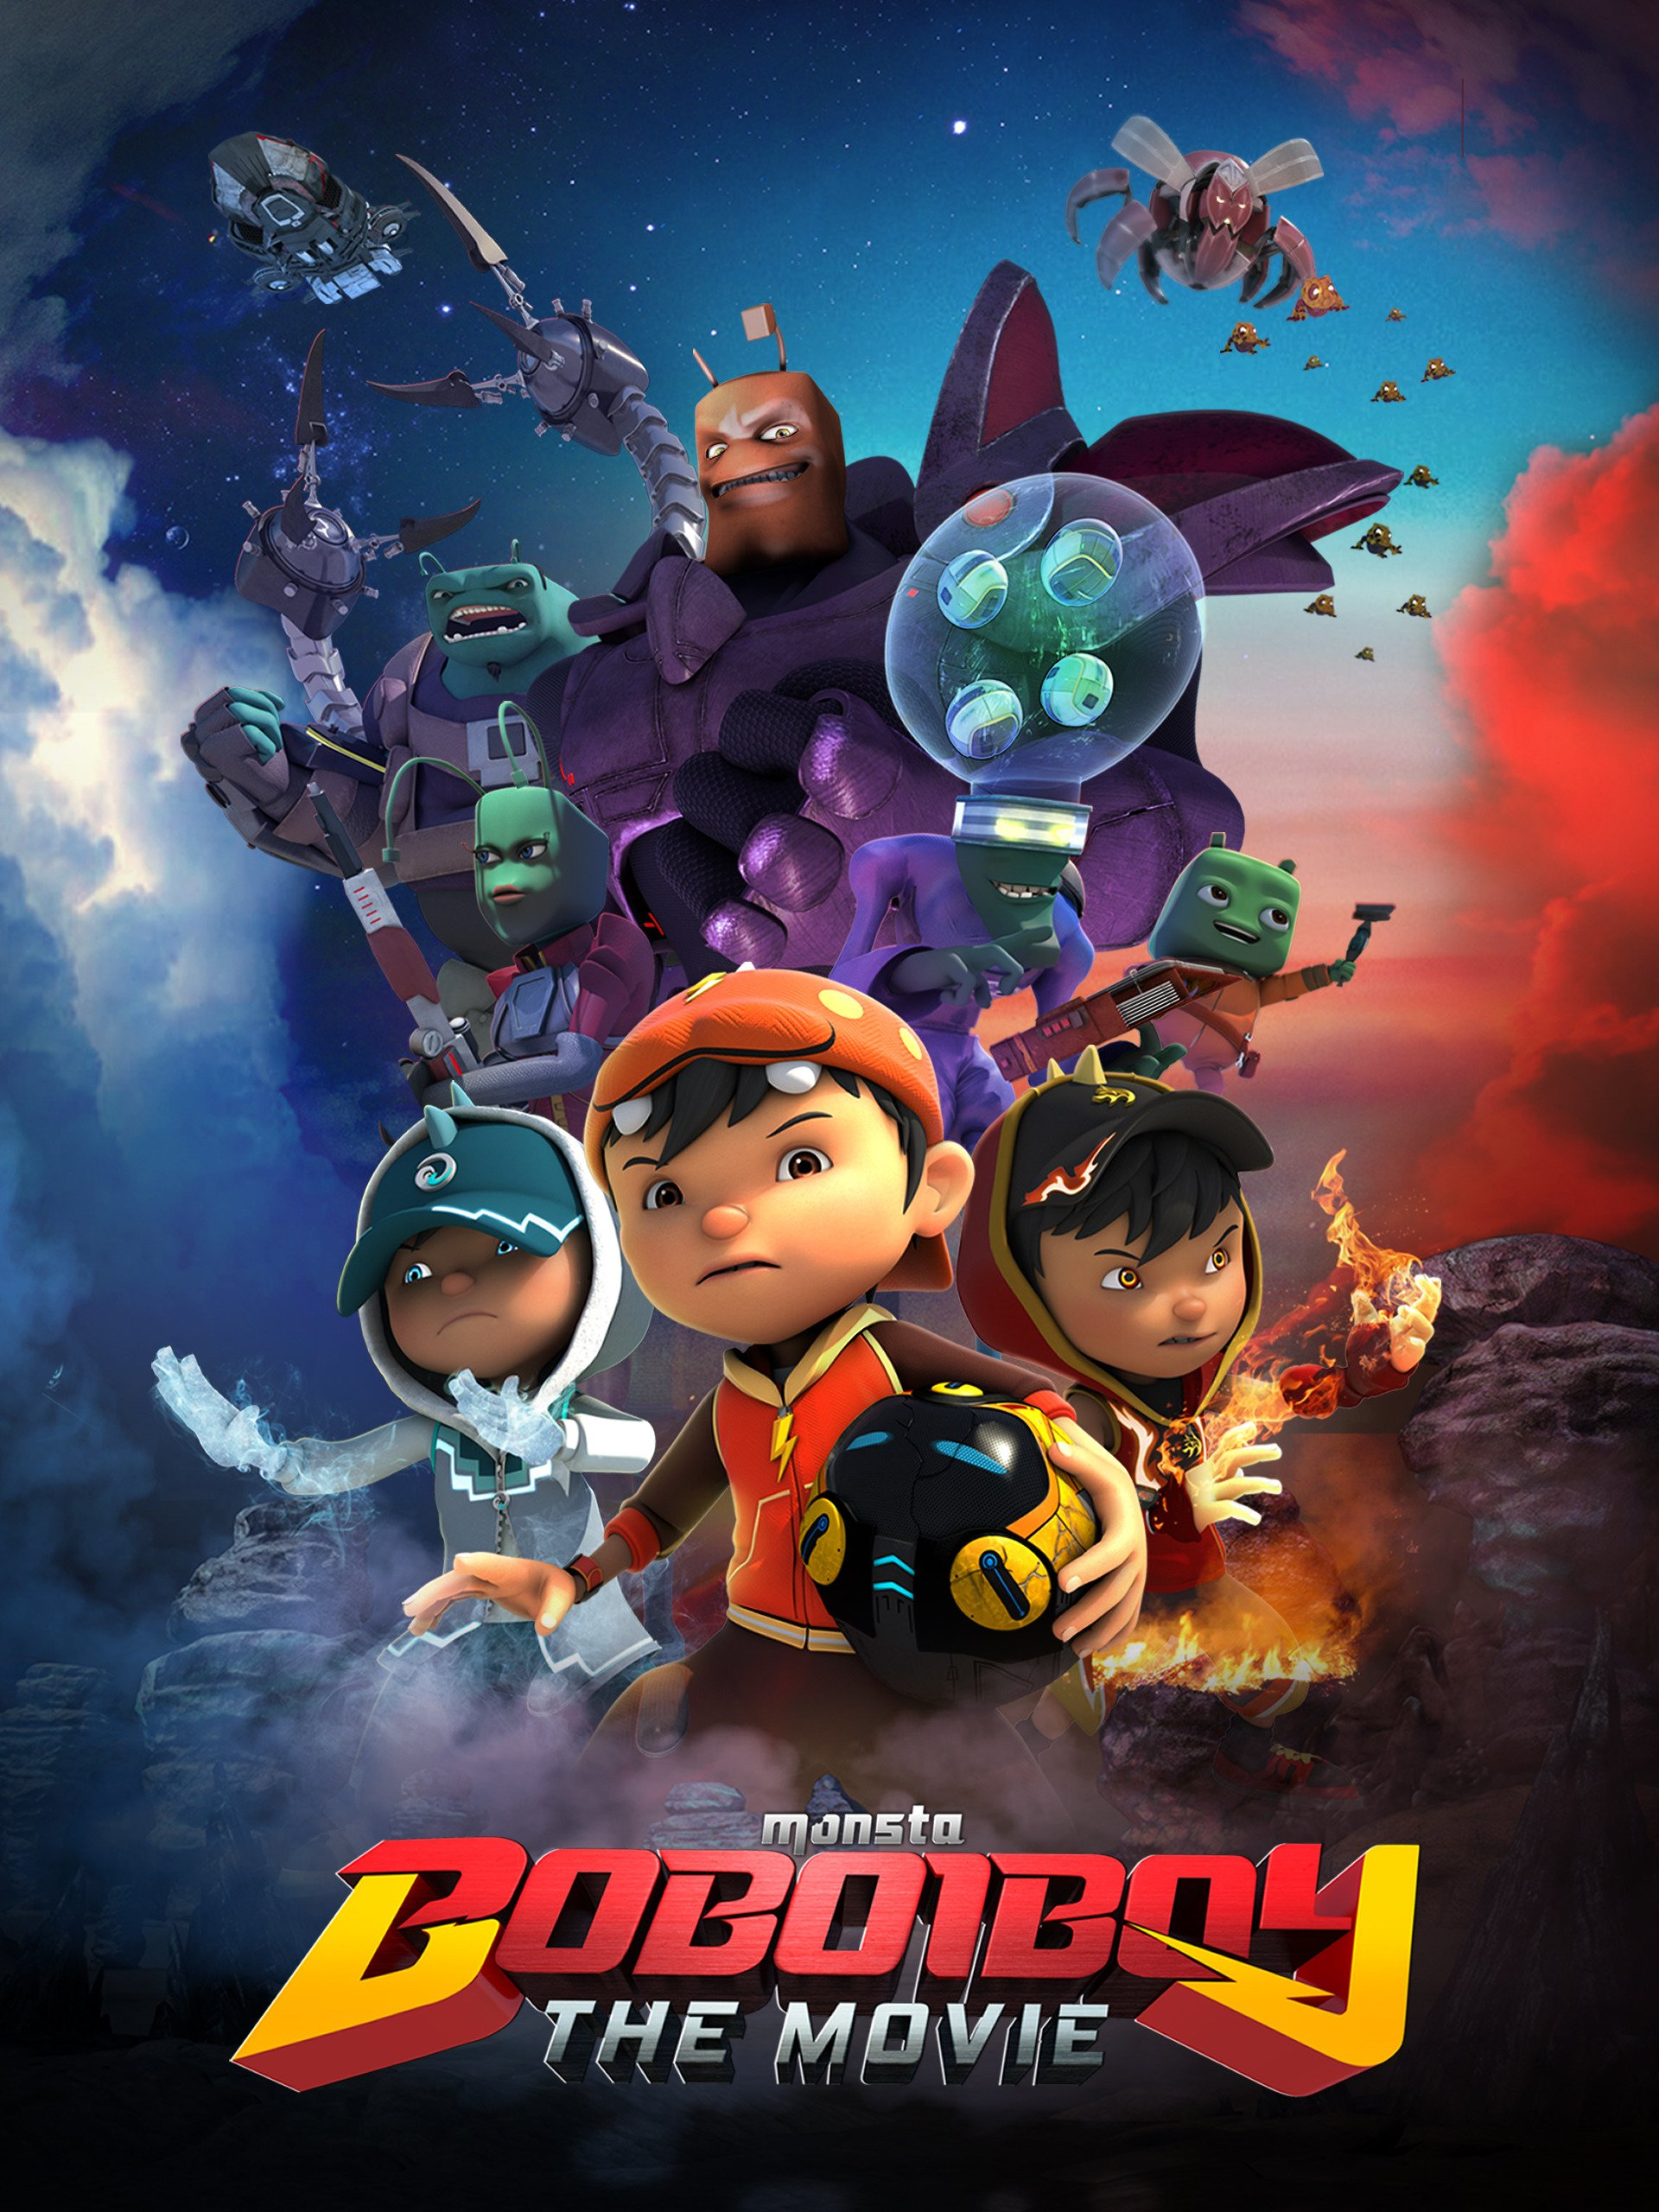 Amazoncom Watch Boboiboy The Movie Prime Video